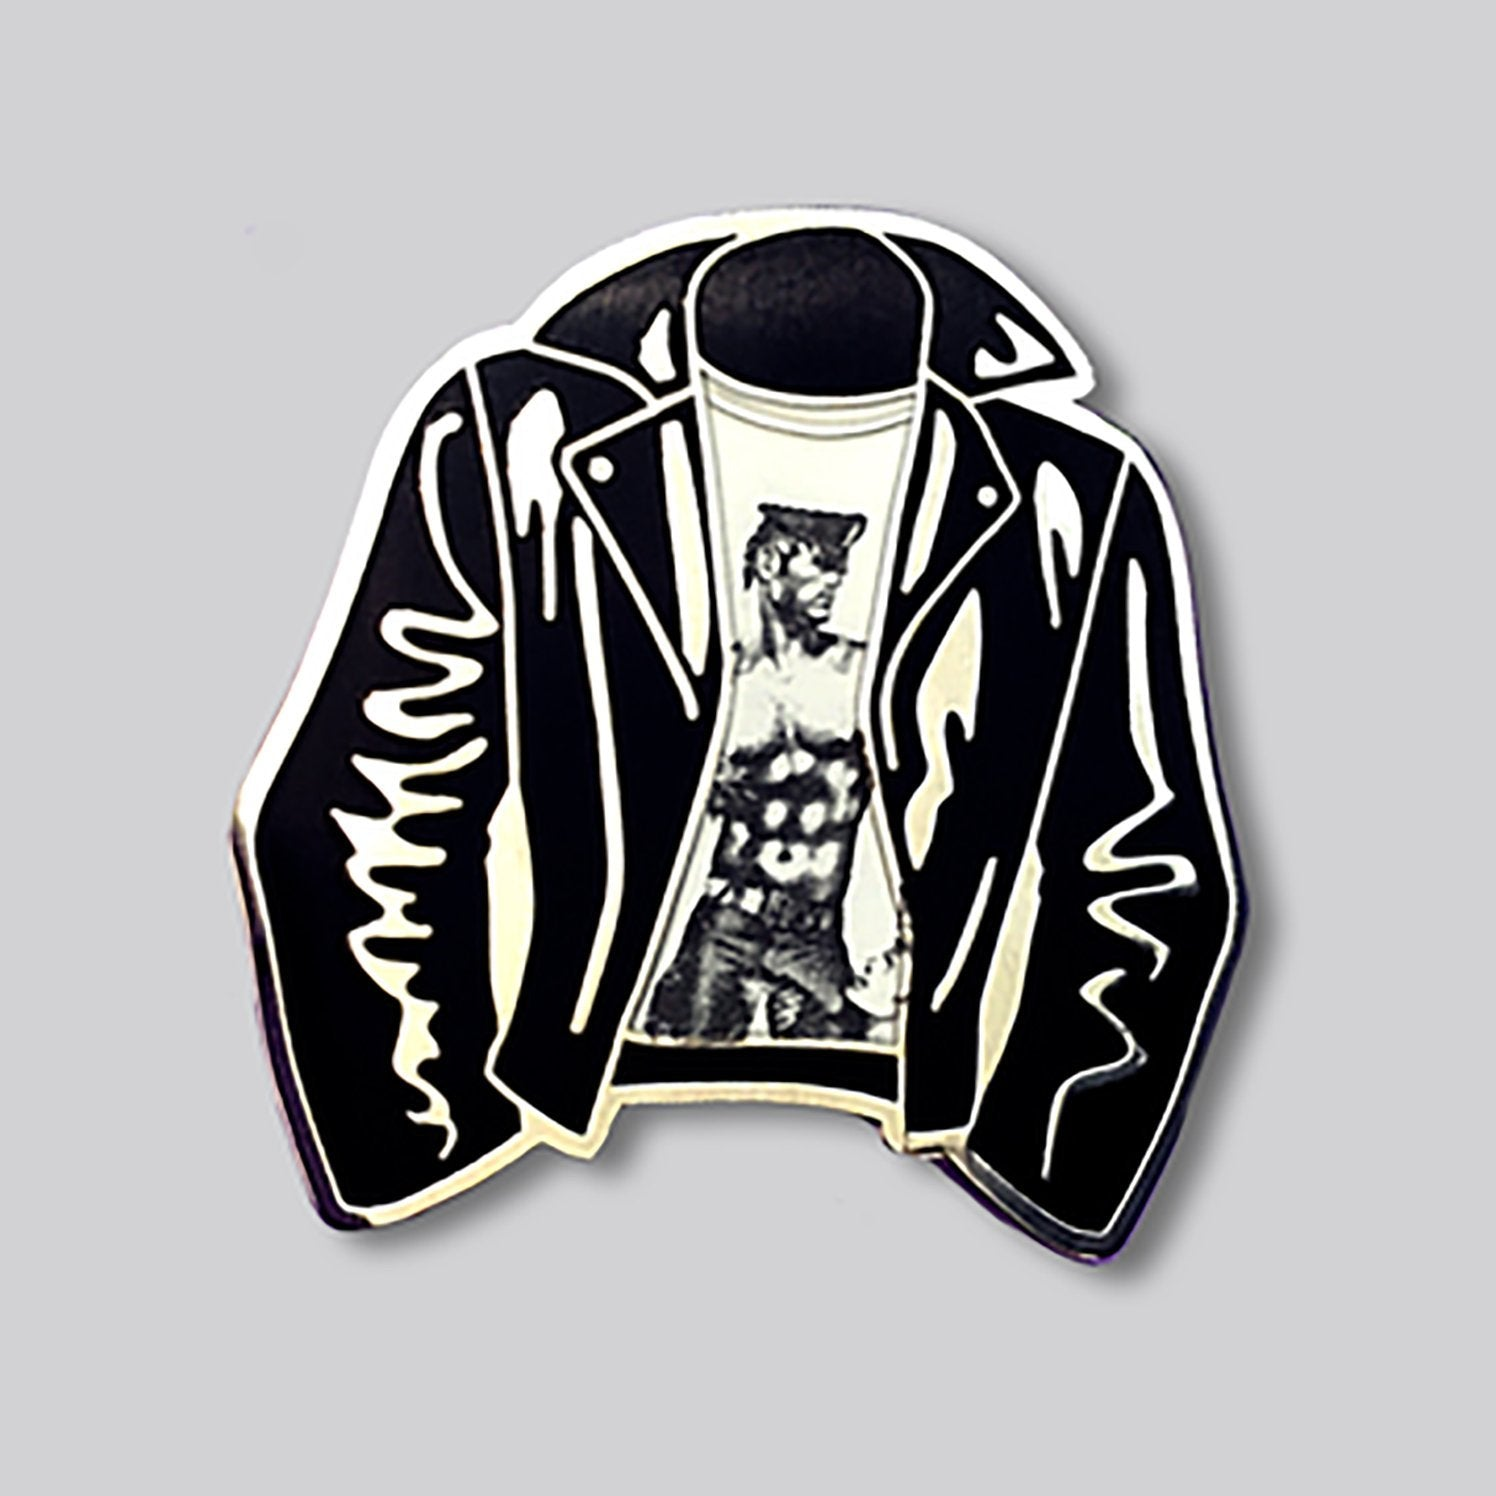 Tom of Finland Leather Jacket Pin - [aka]